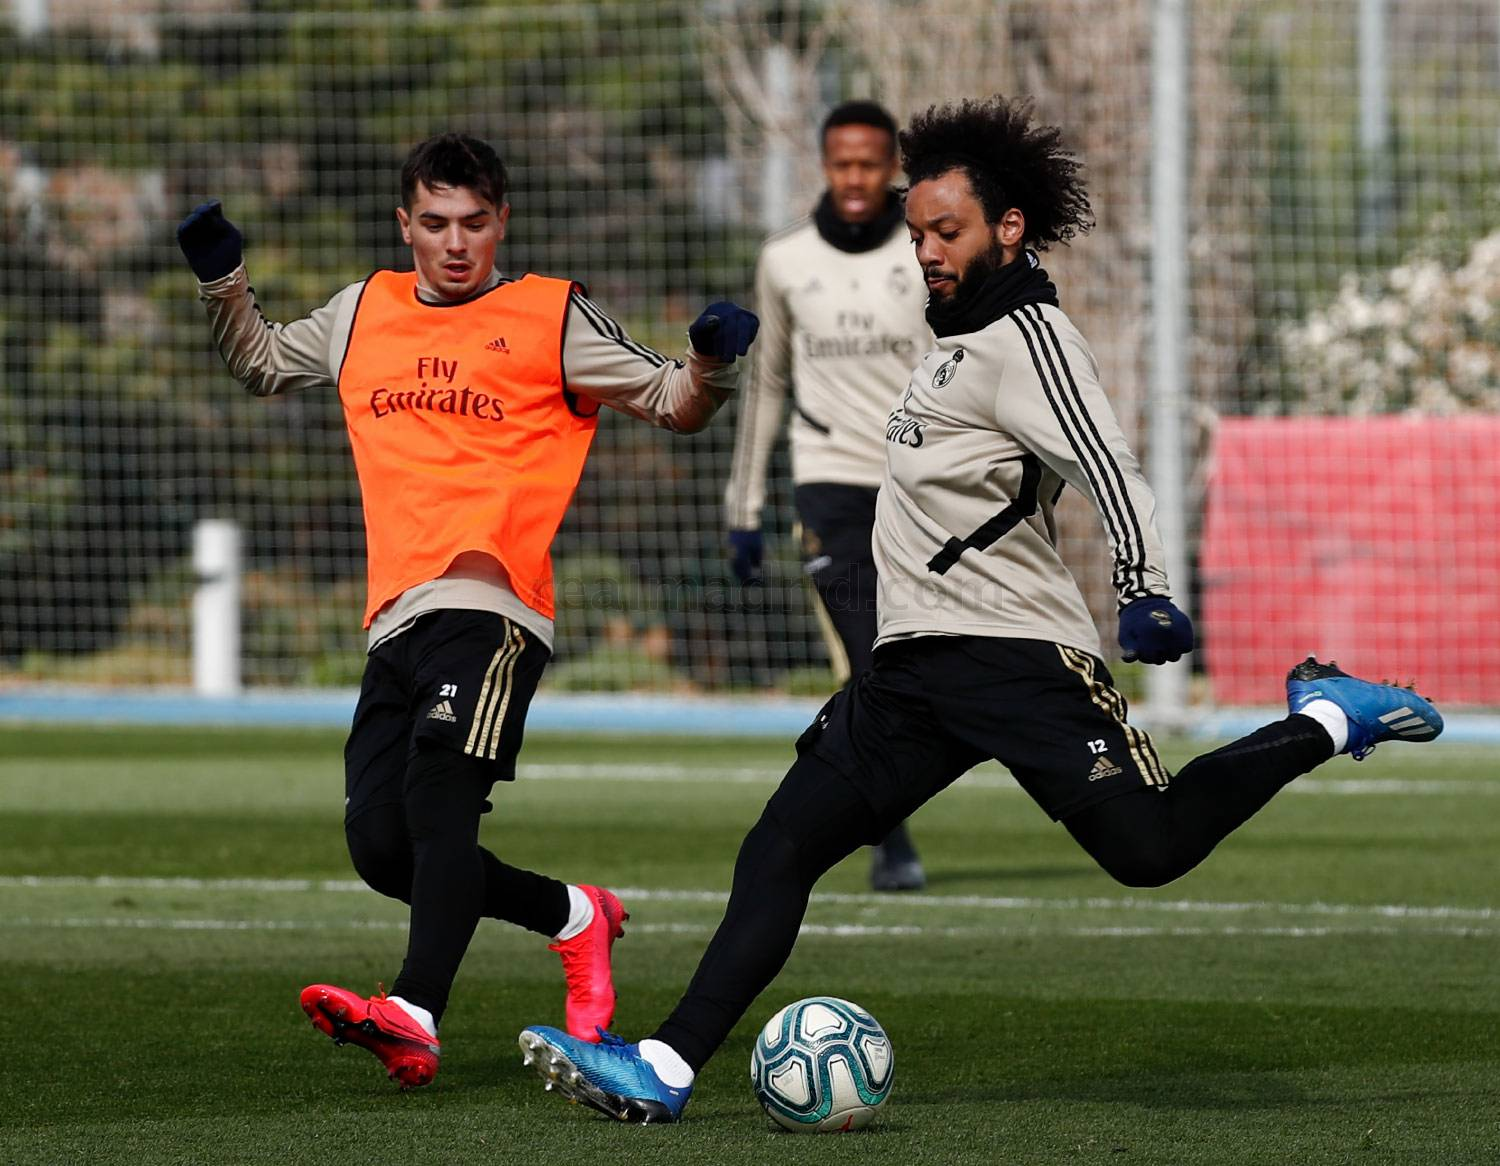 Real Madrid - Entrenamiento del Real Madrid  - 06-03-2020